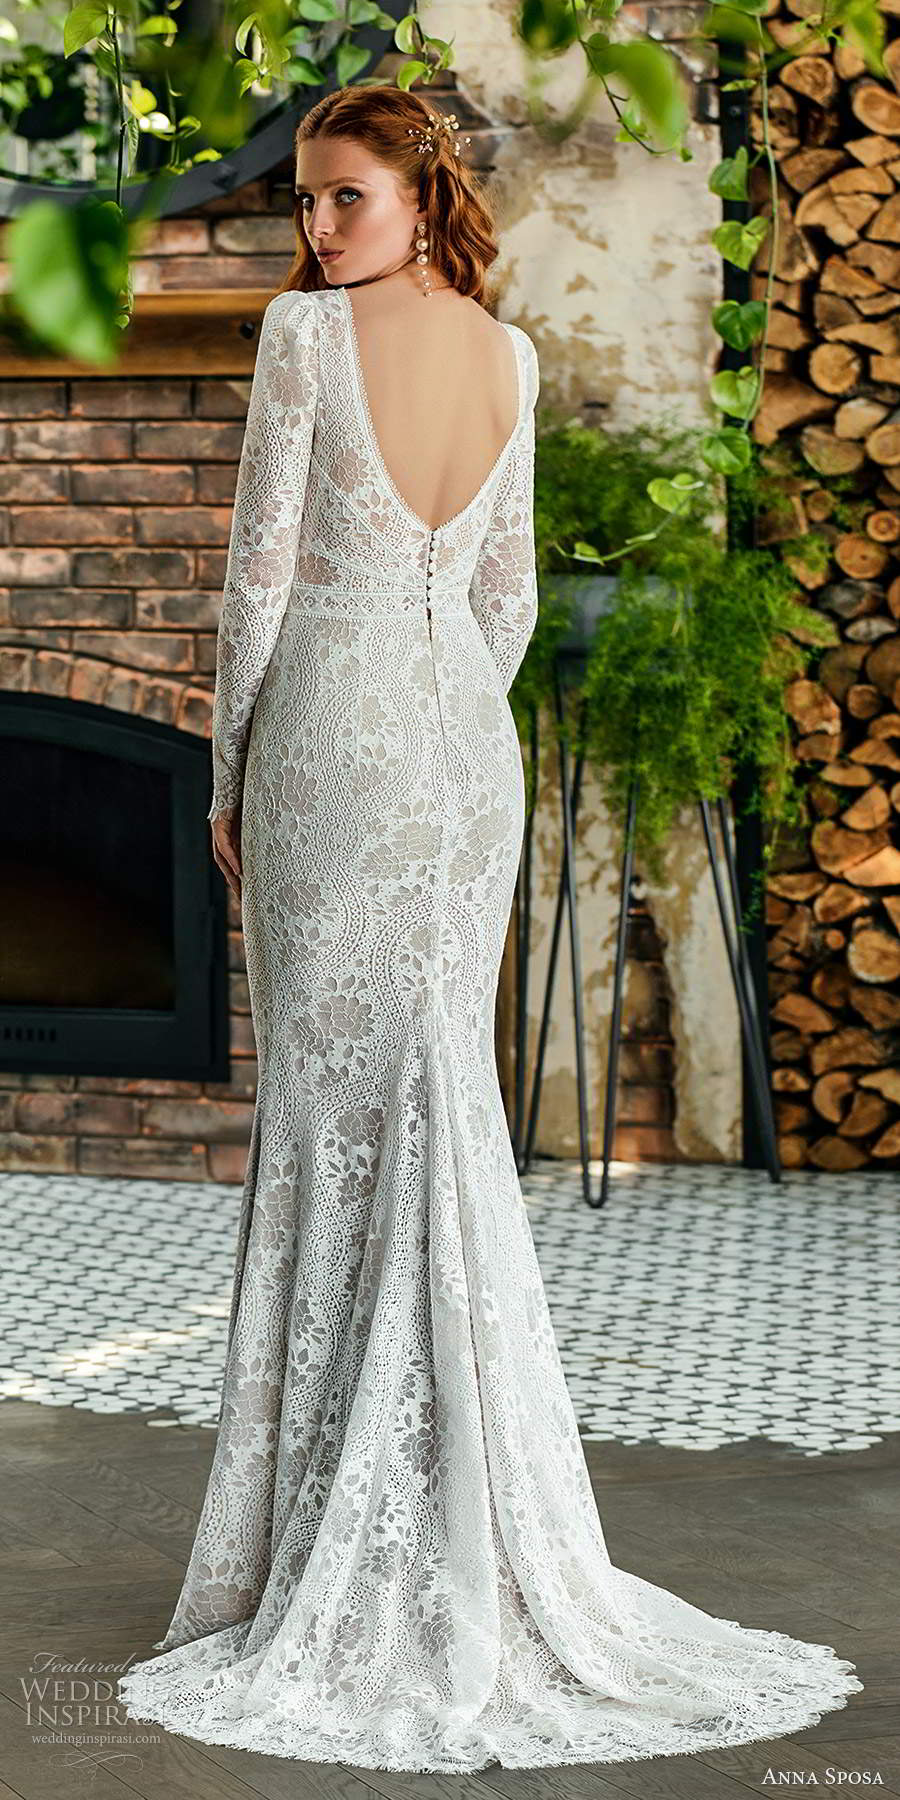 anna sposa 2021 boho bridal long puff sleeves plunging v neckline embellished lace sheath wedding dress scoop back chapel train (6) bv